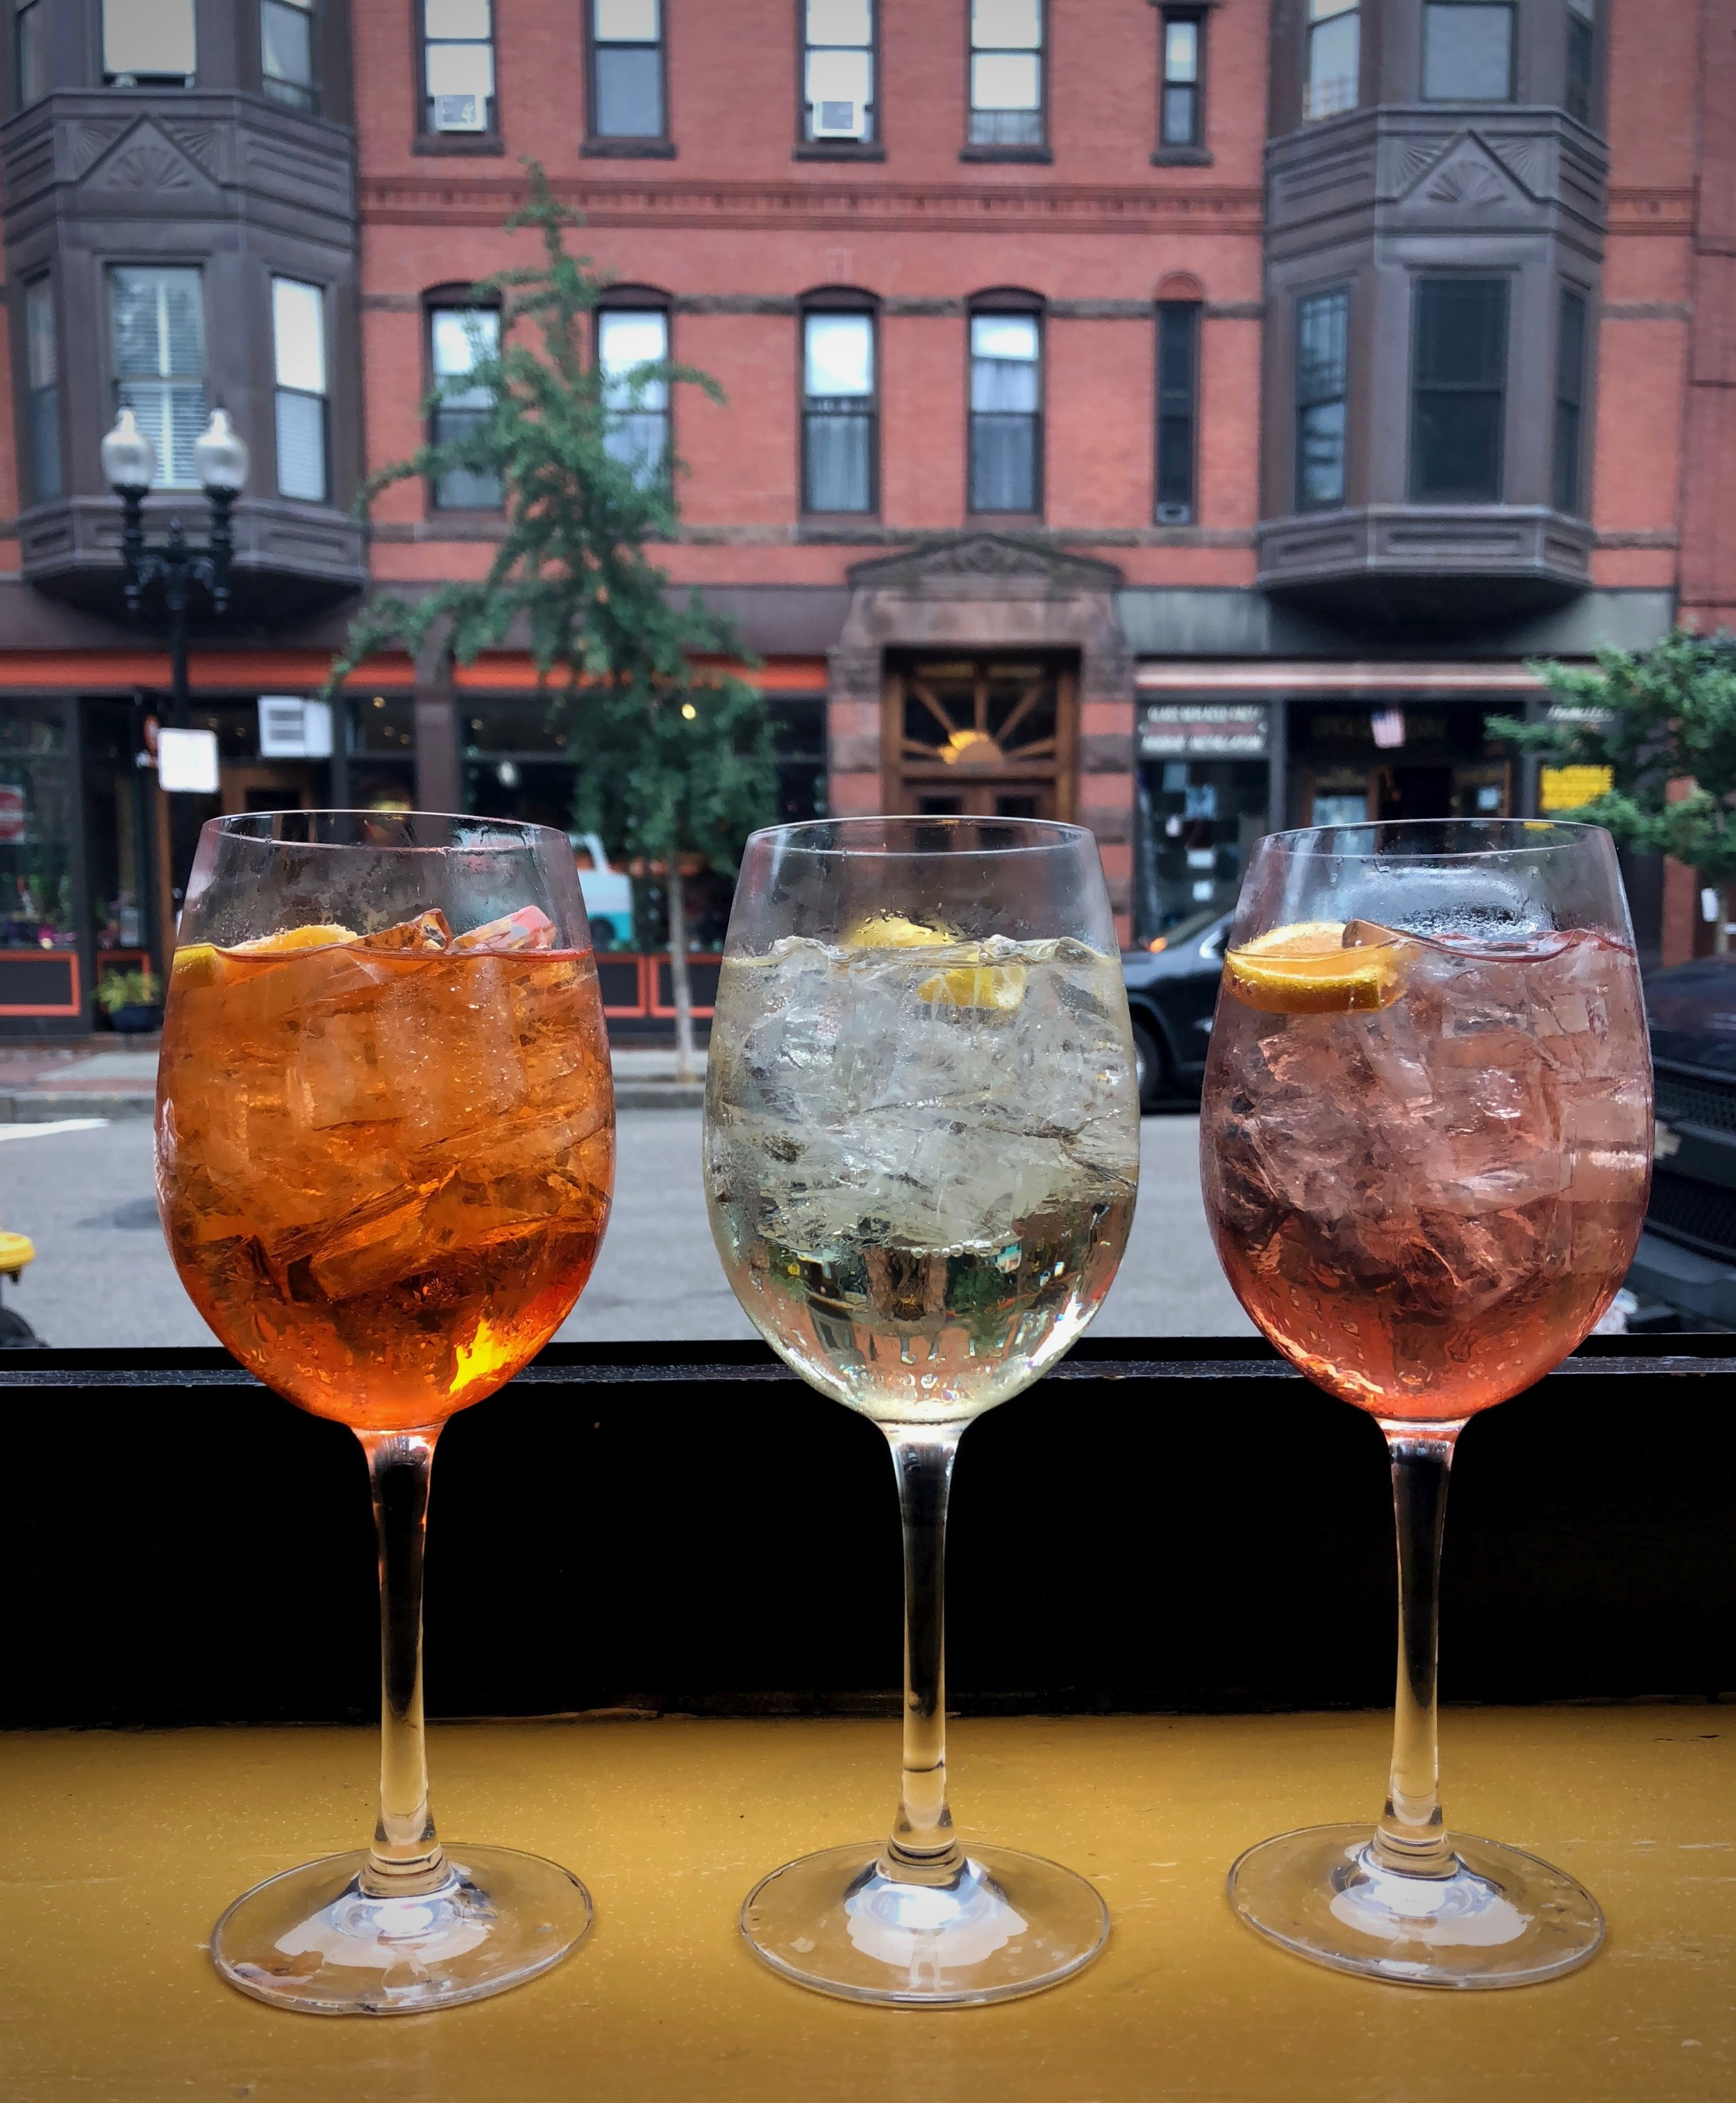 From right, the Italicus Spritz, Alessio Spritz, and Aperol Spritz